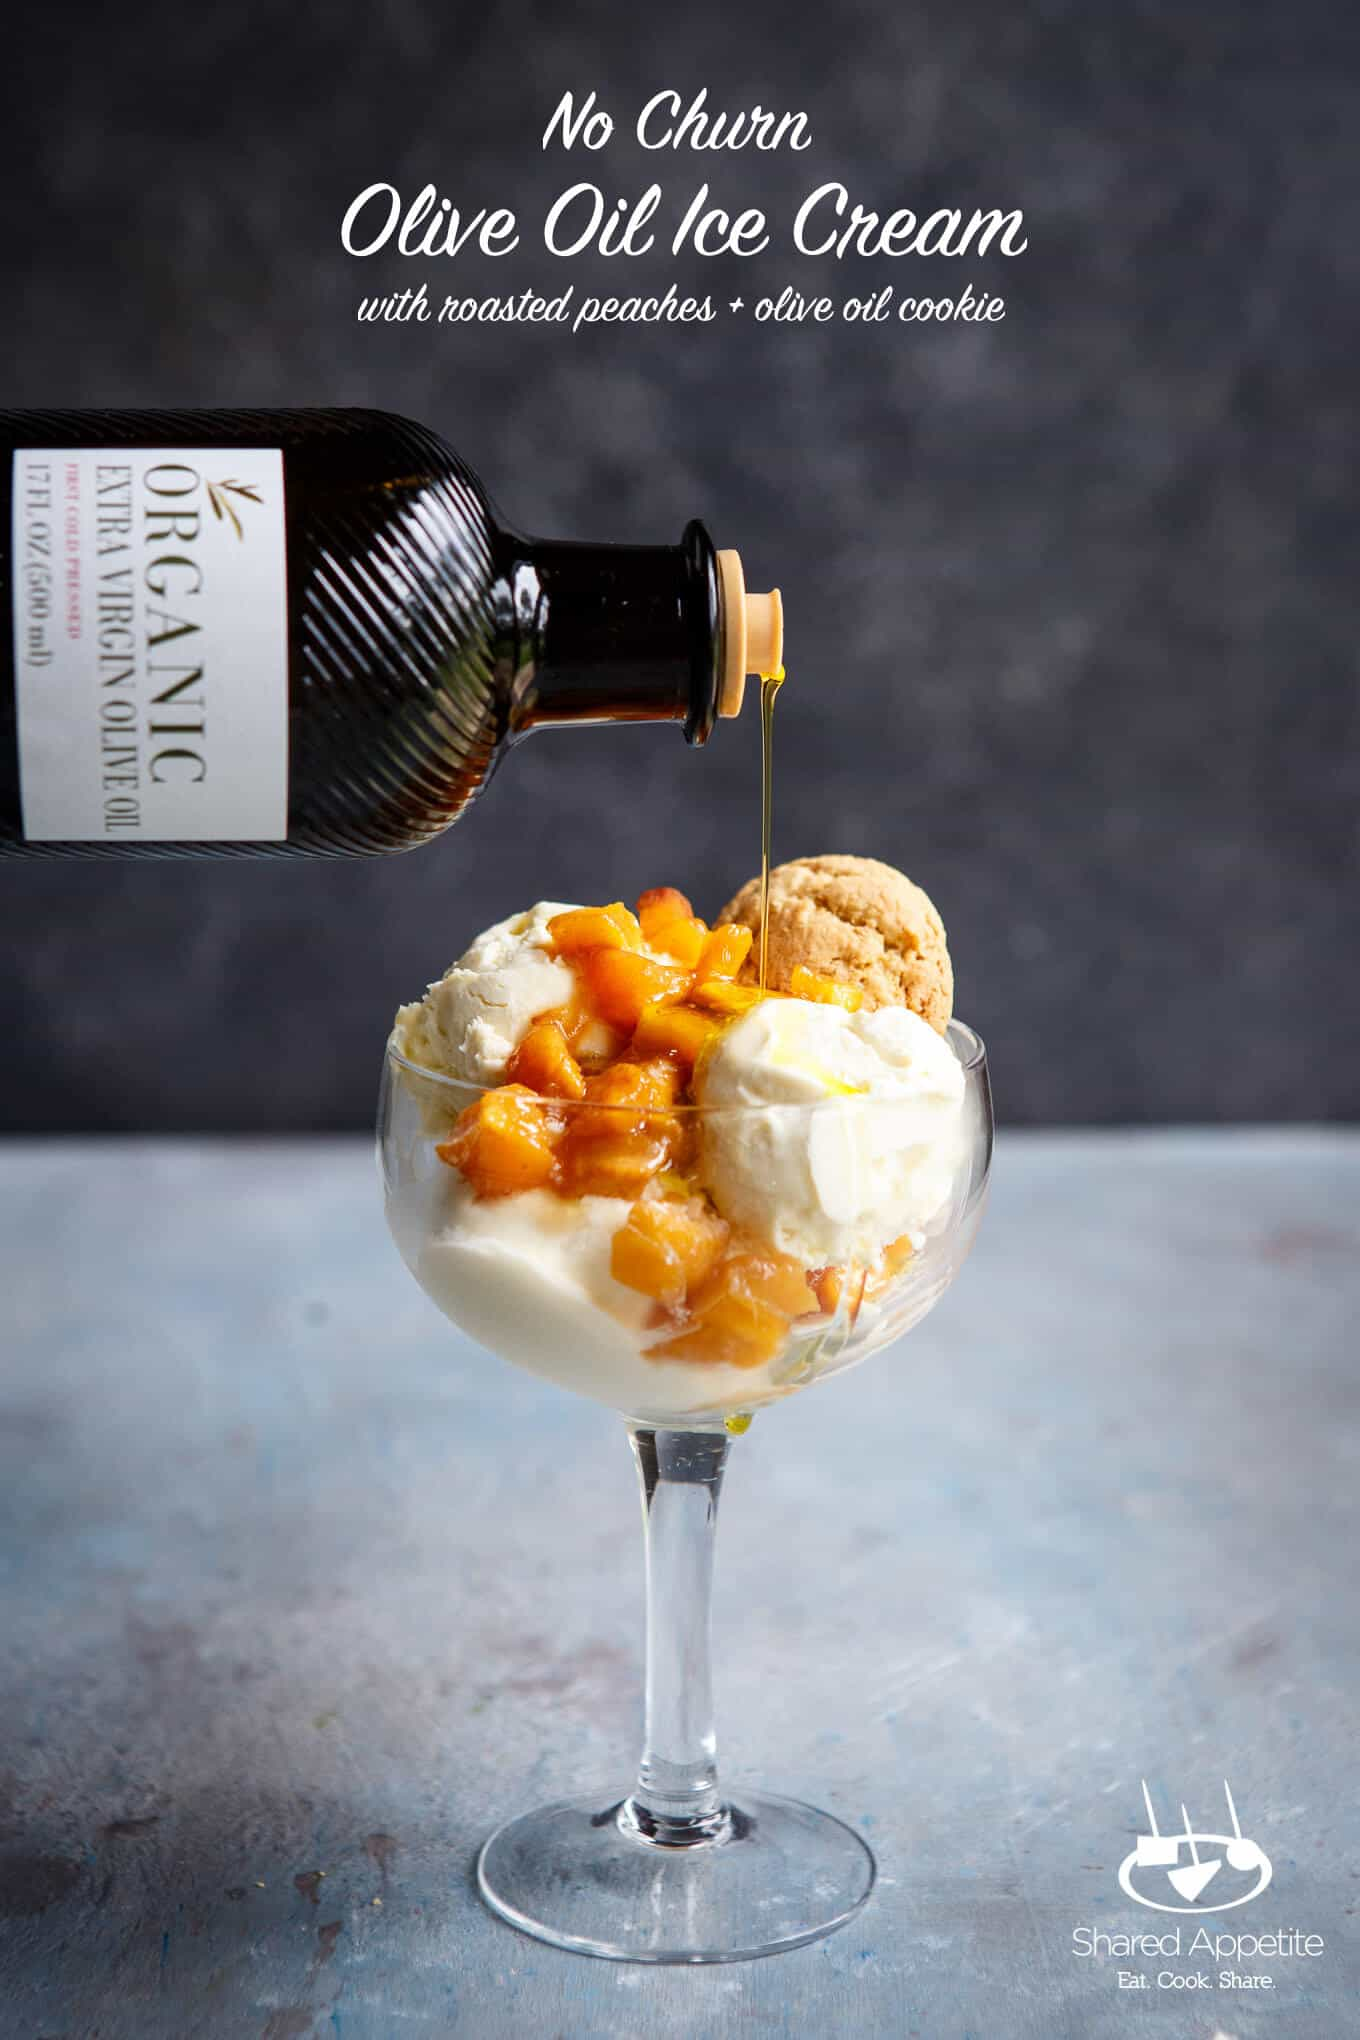 No Churn Olive Oil Ice Cream with Brown Sugar Roasted Peaches with Olive Oil Cookie | sharedappetite.com